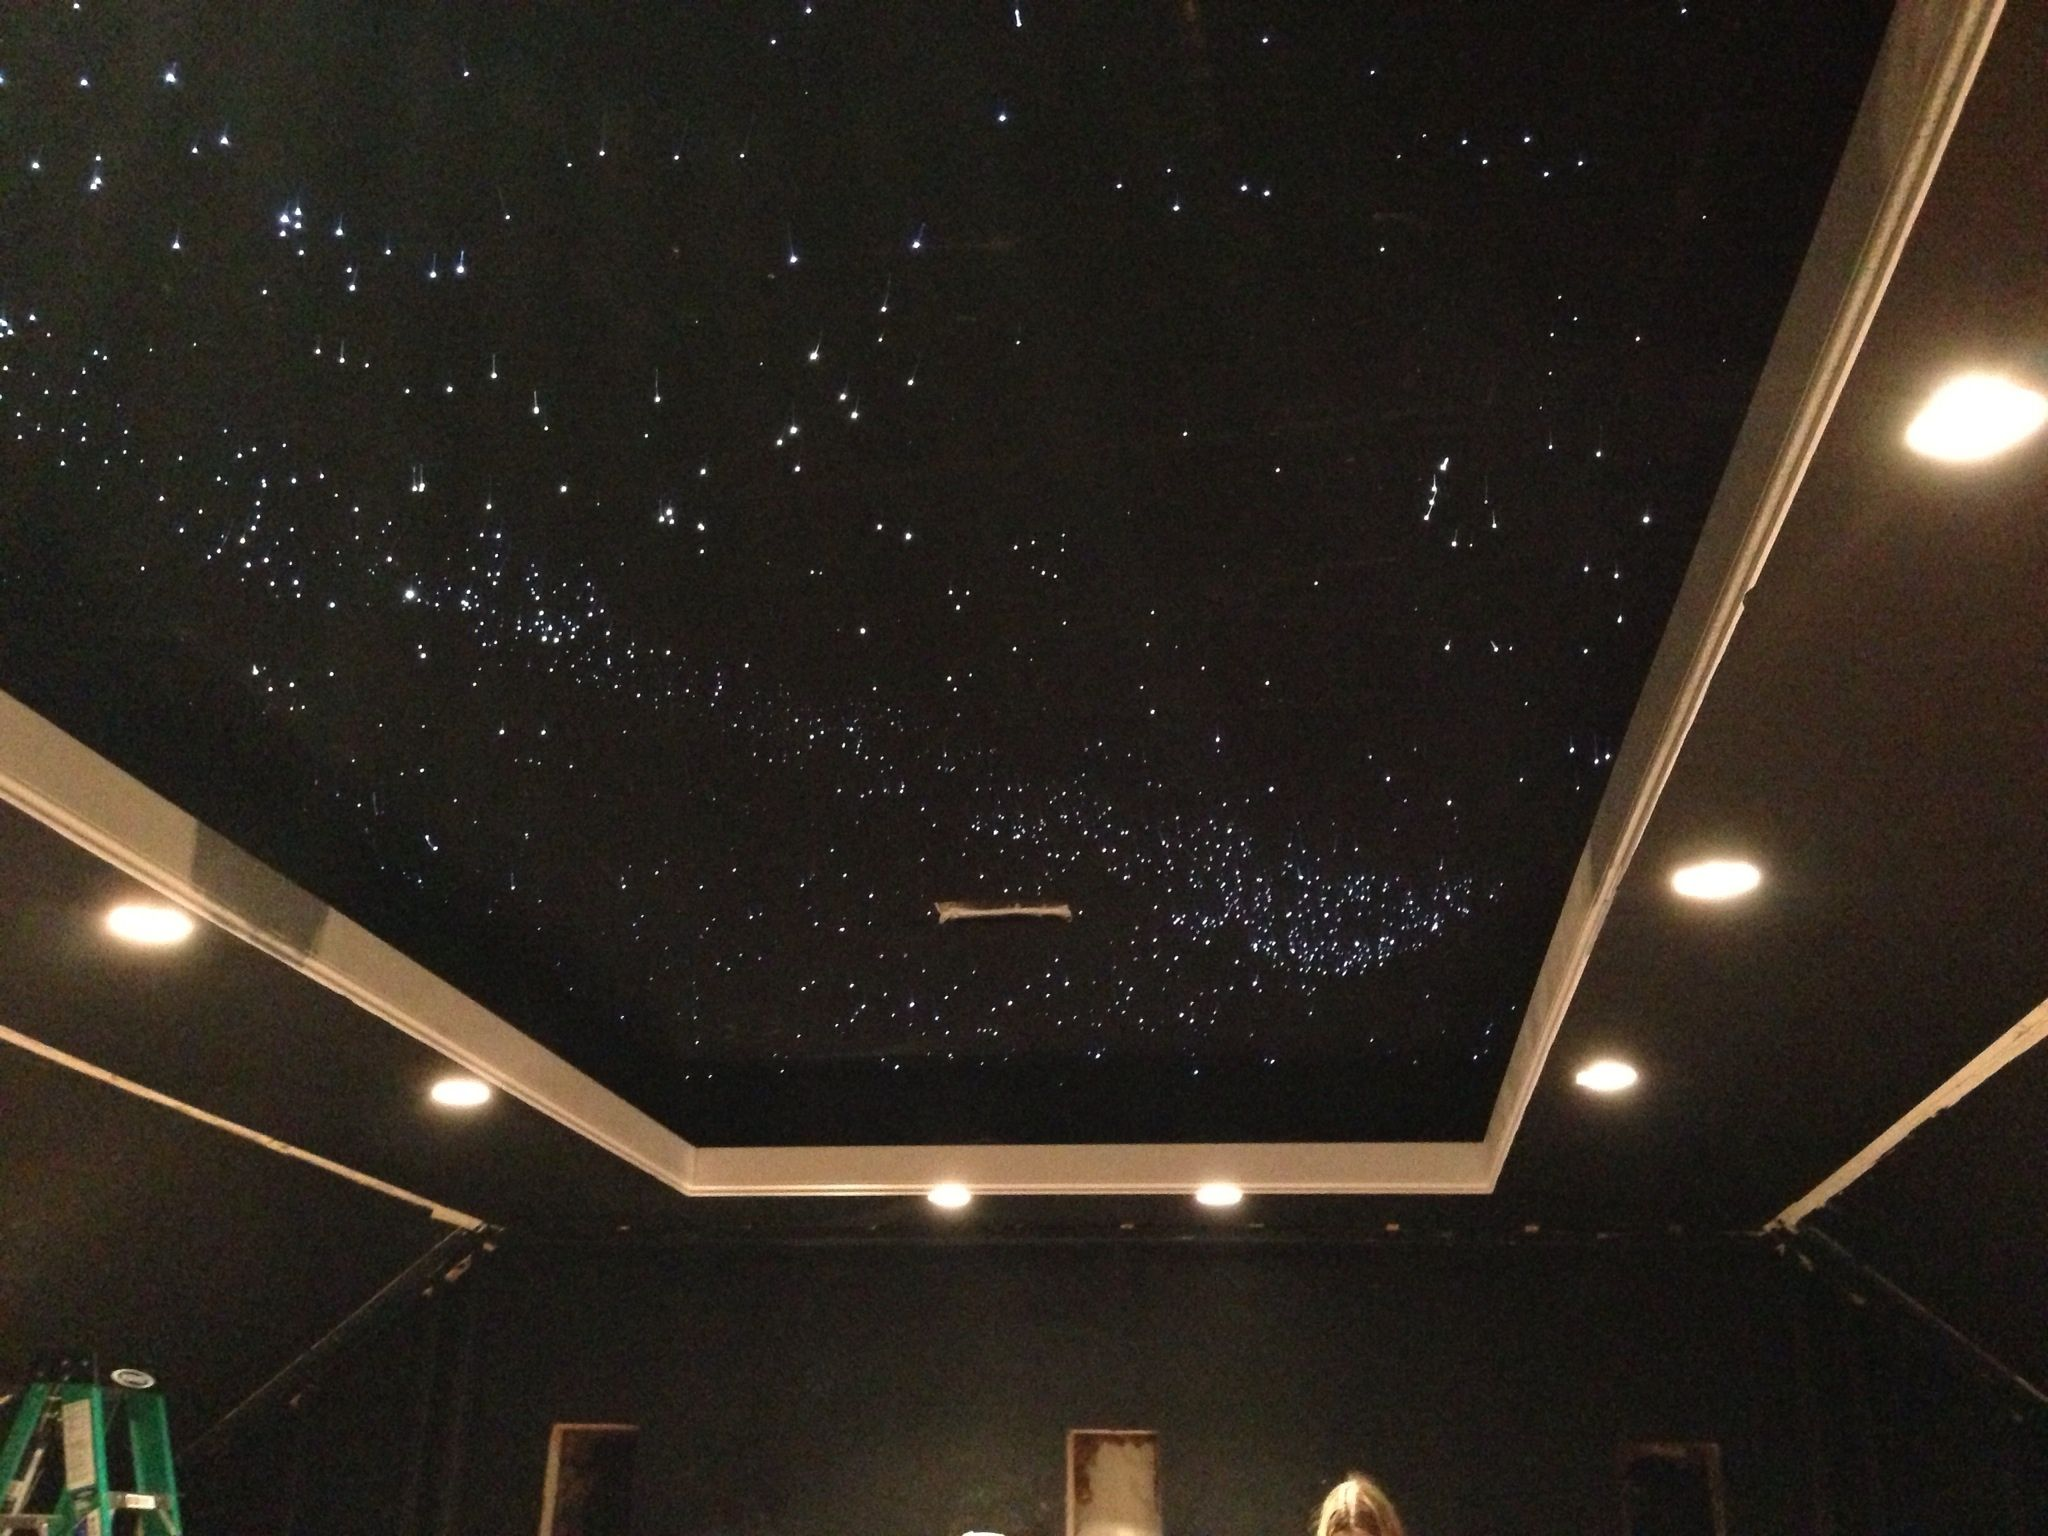 Star map projector lamp - 25 Best Ideas About Ceiling Projector On Pinterest The Projector Small Projector And Projector Wall